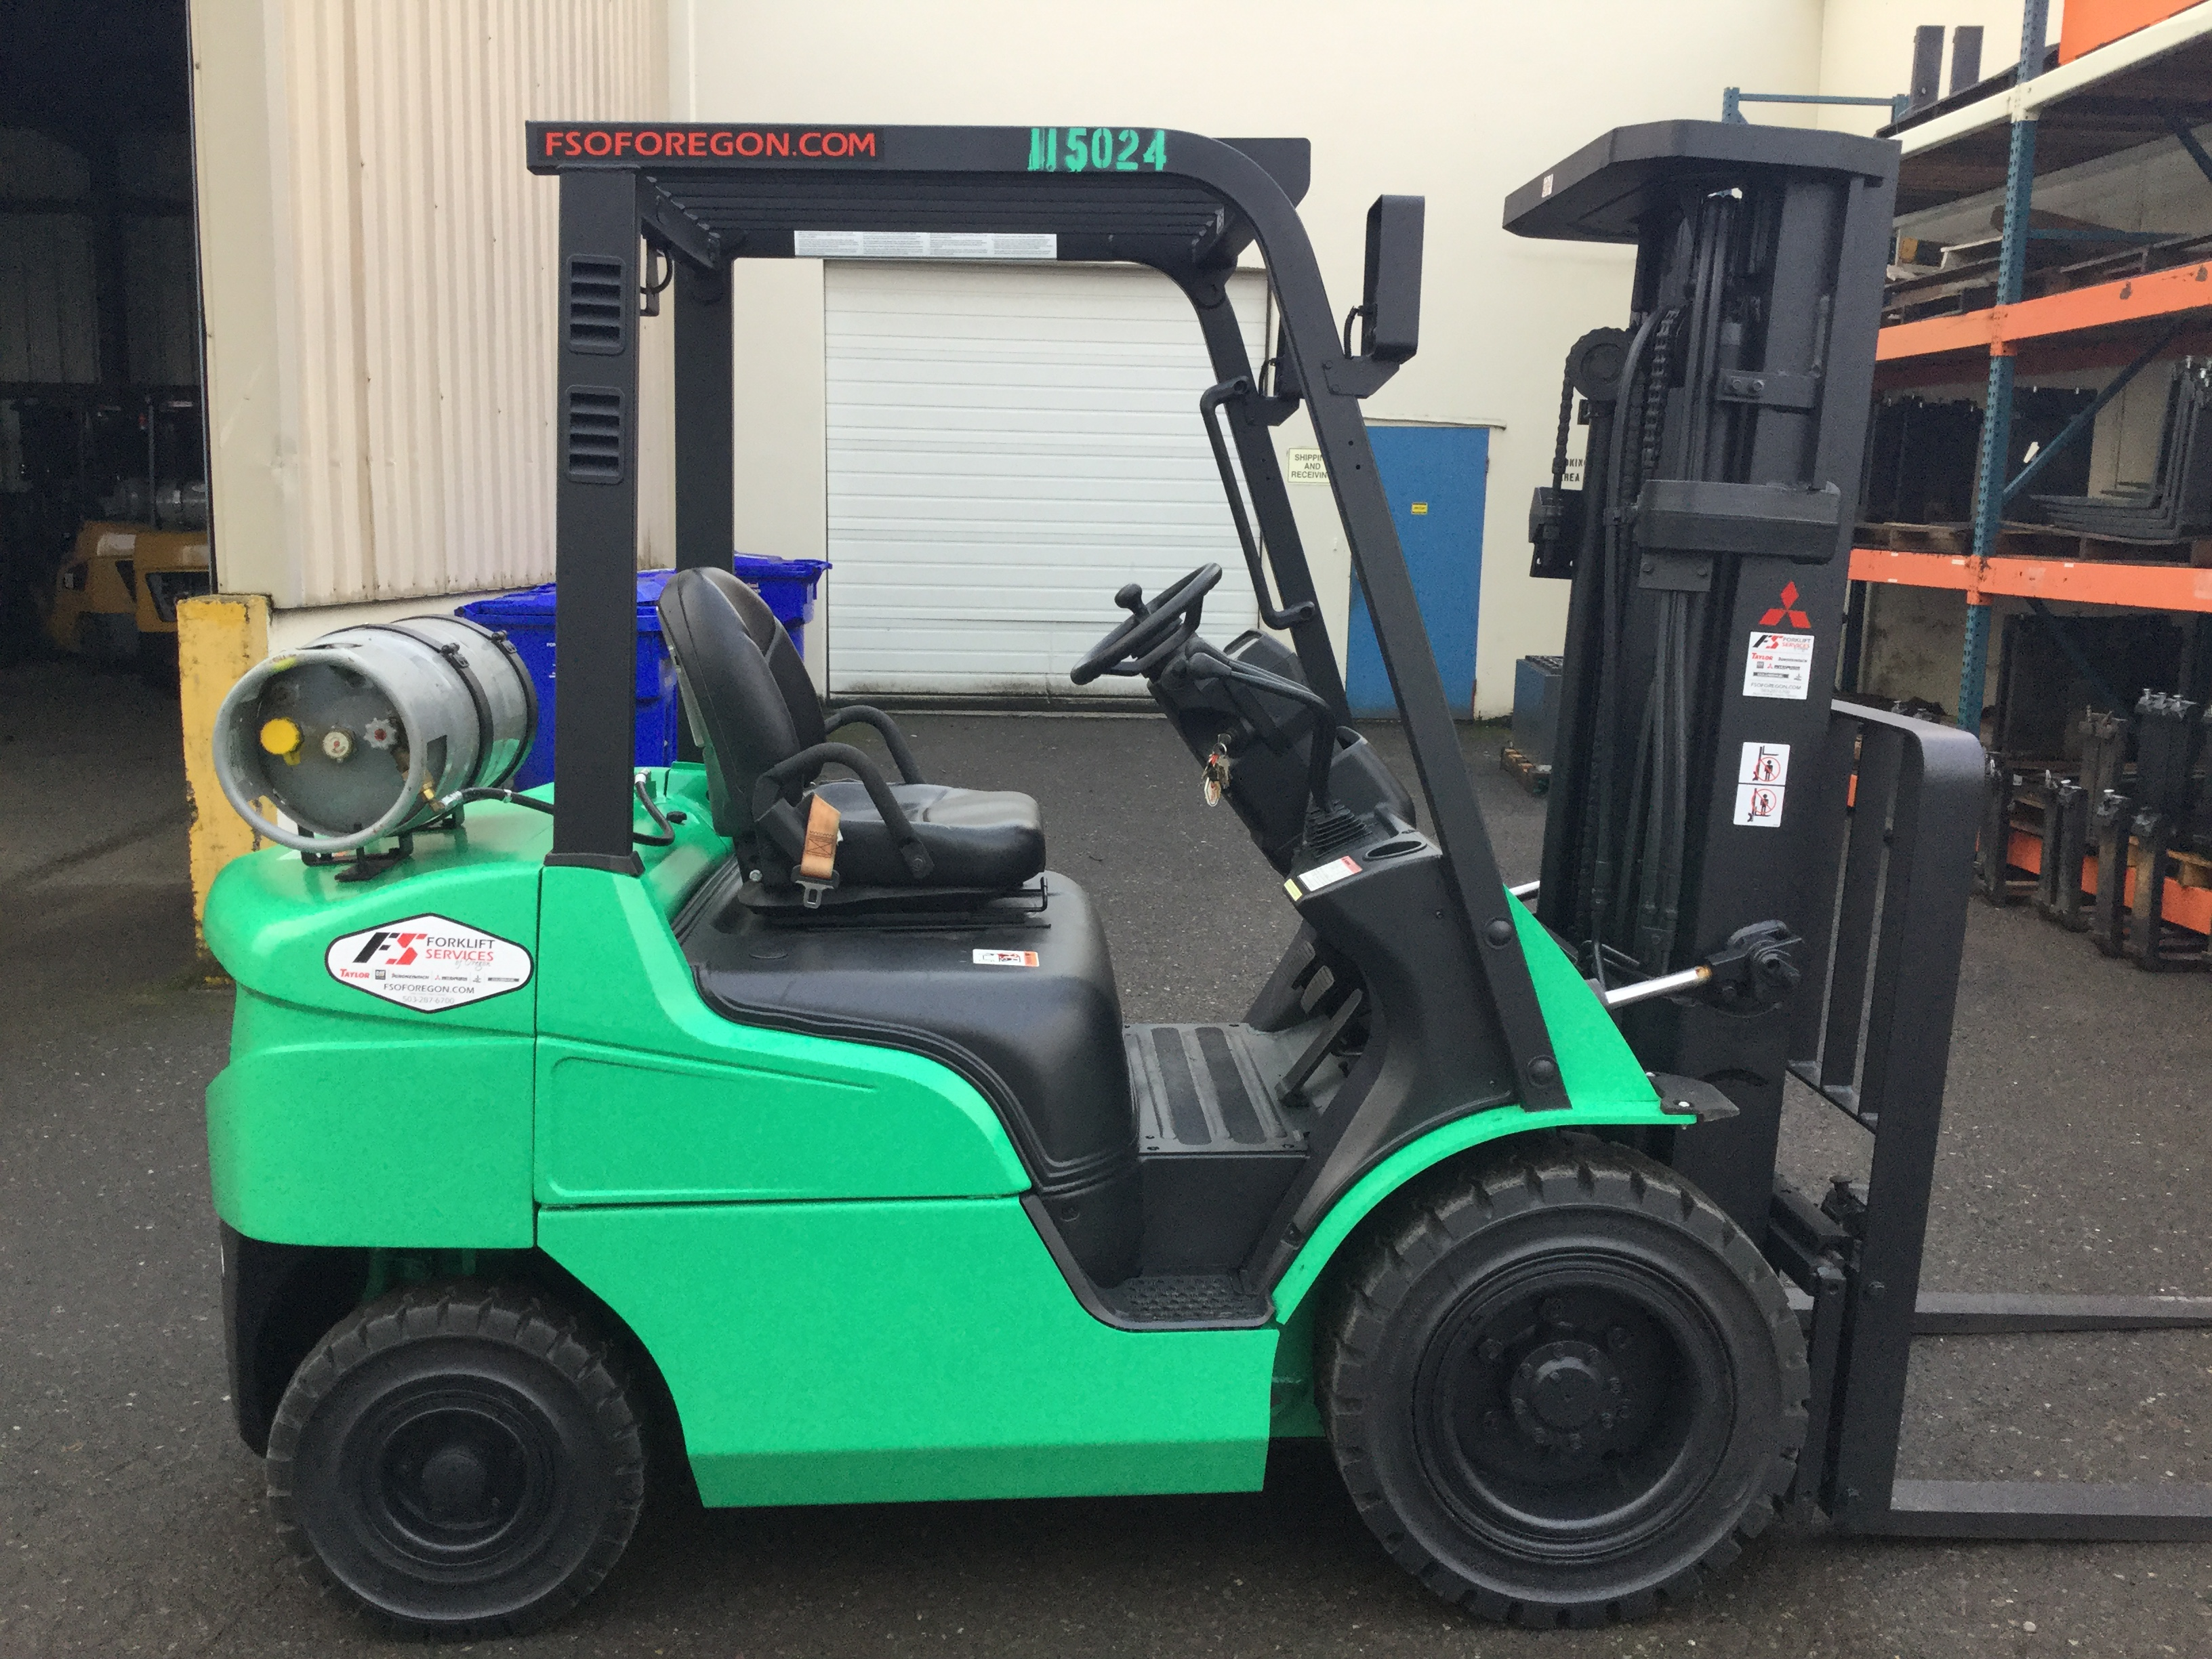 news duty mitsubishi forklift at heavy impact new imhx unveil electric to carer forklifts